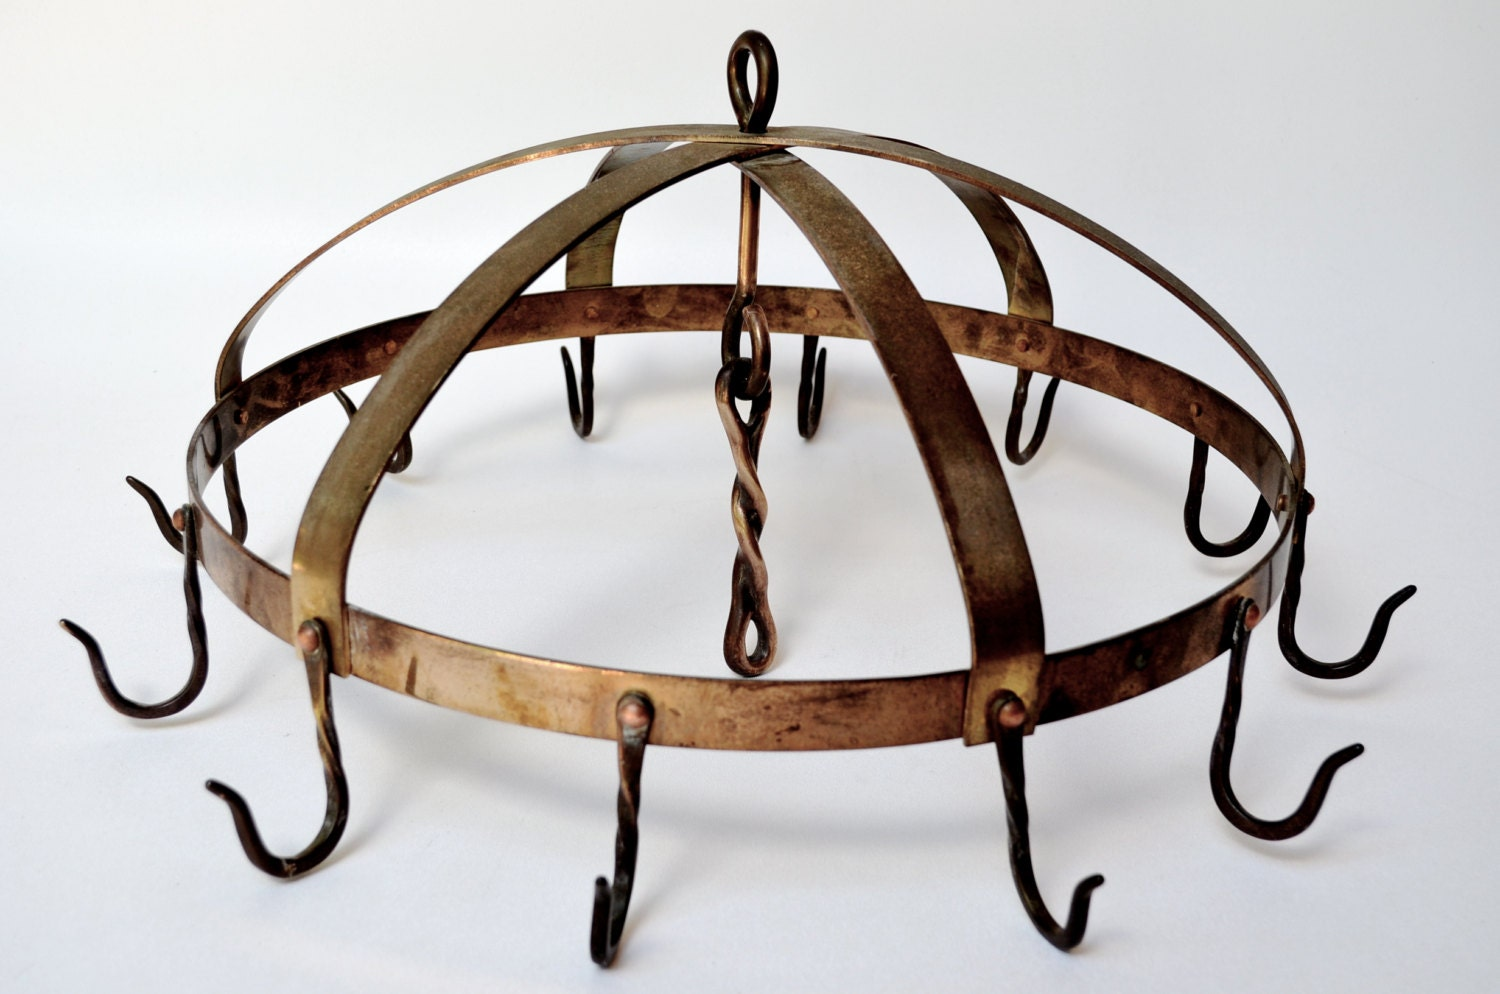 Round Dome Hanging Pot Rack in Brass Copper and Steel with